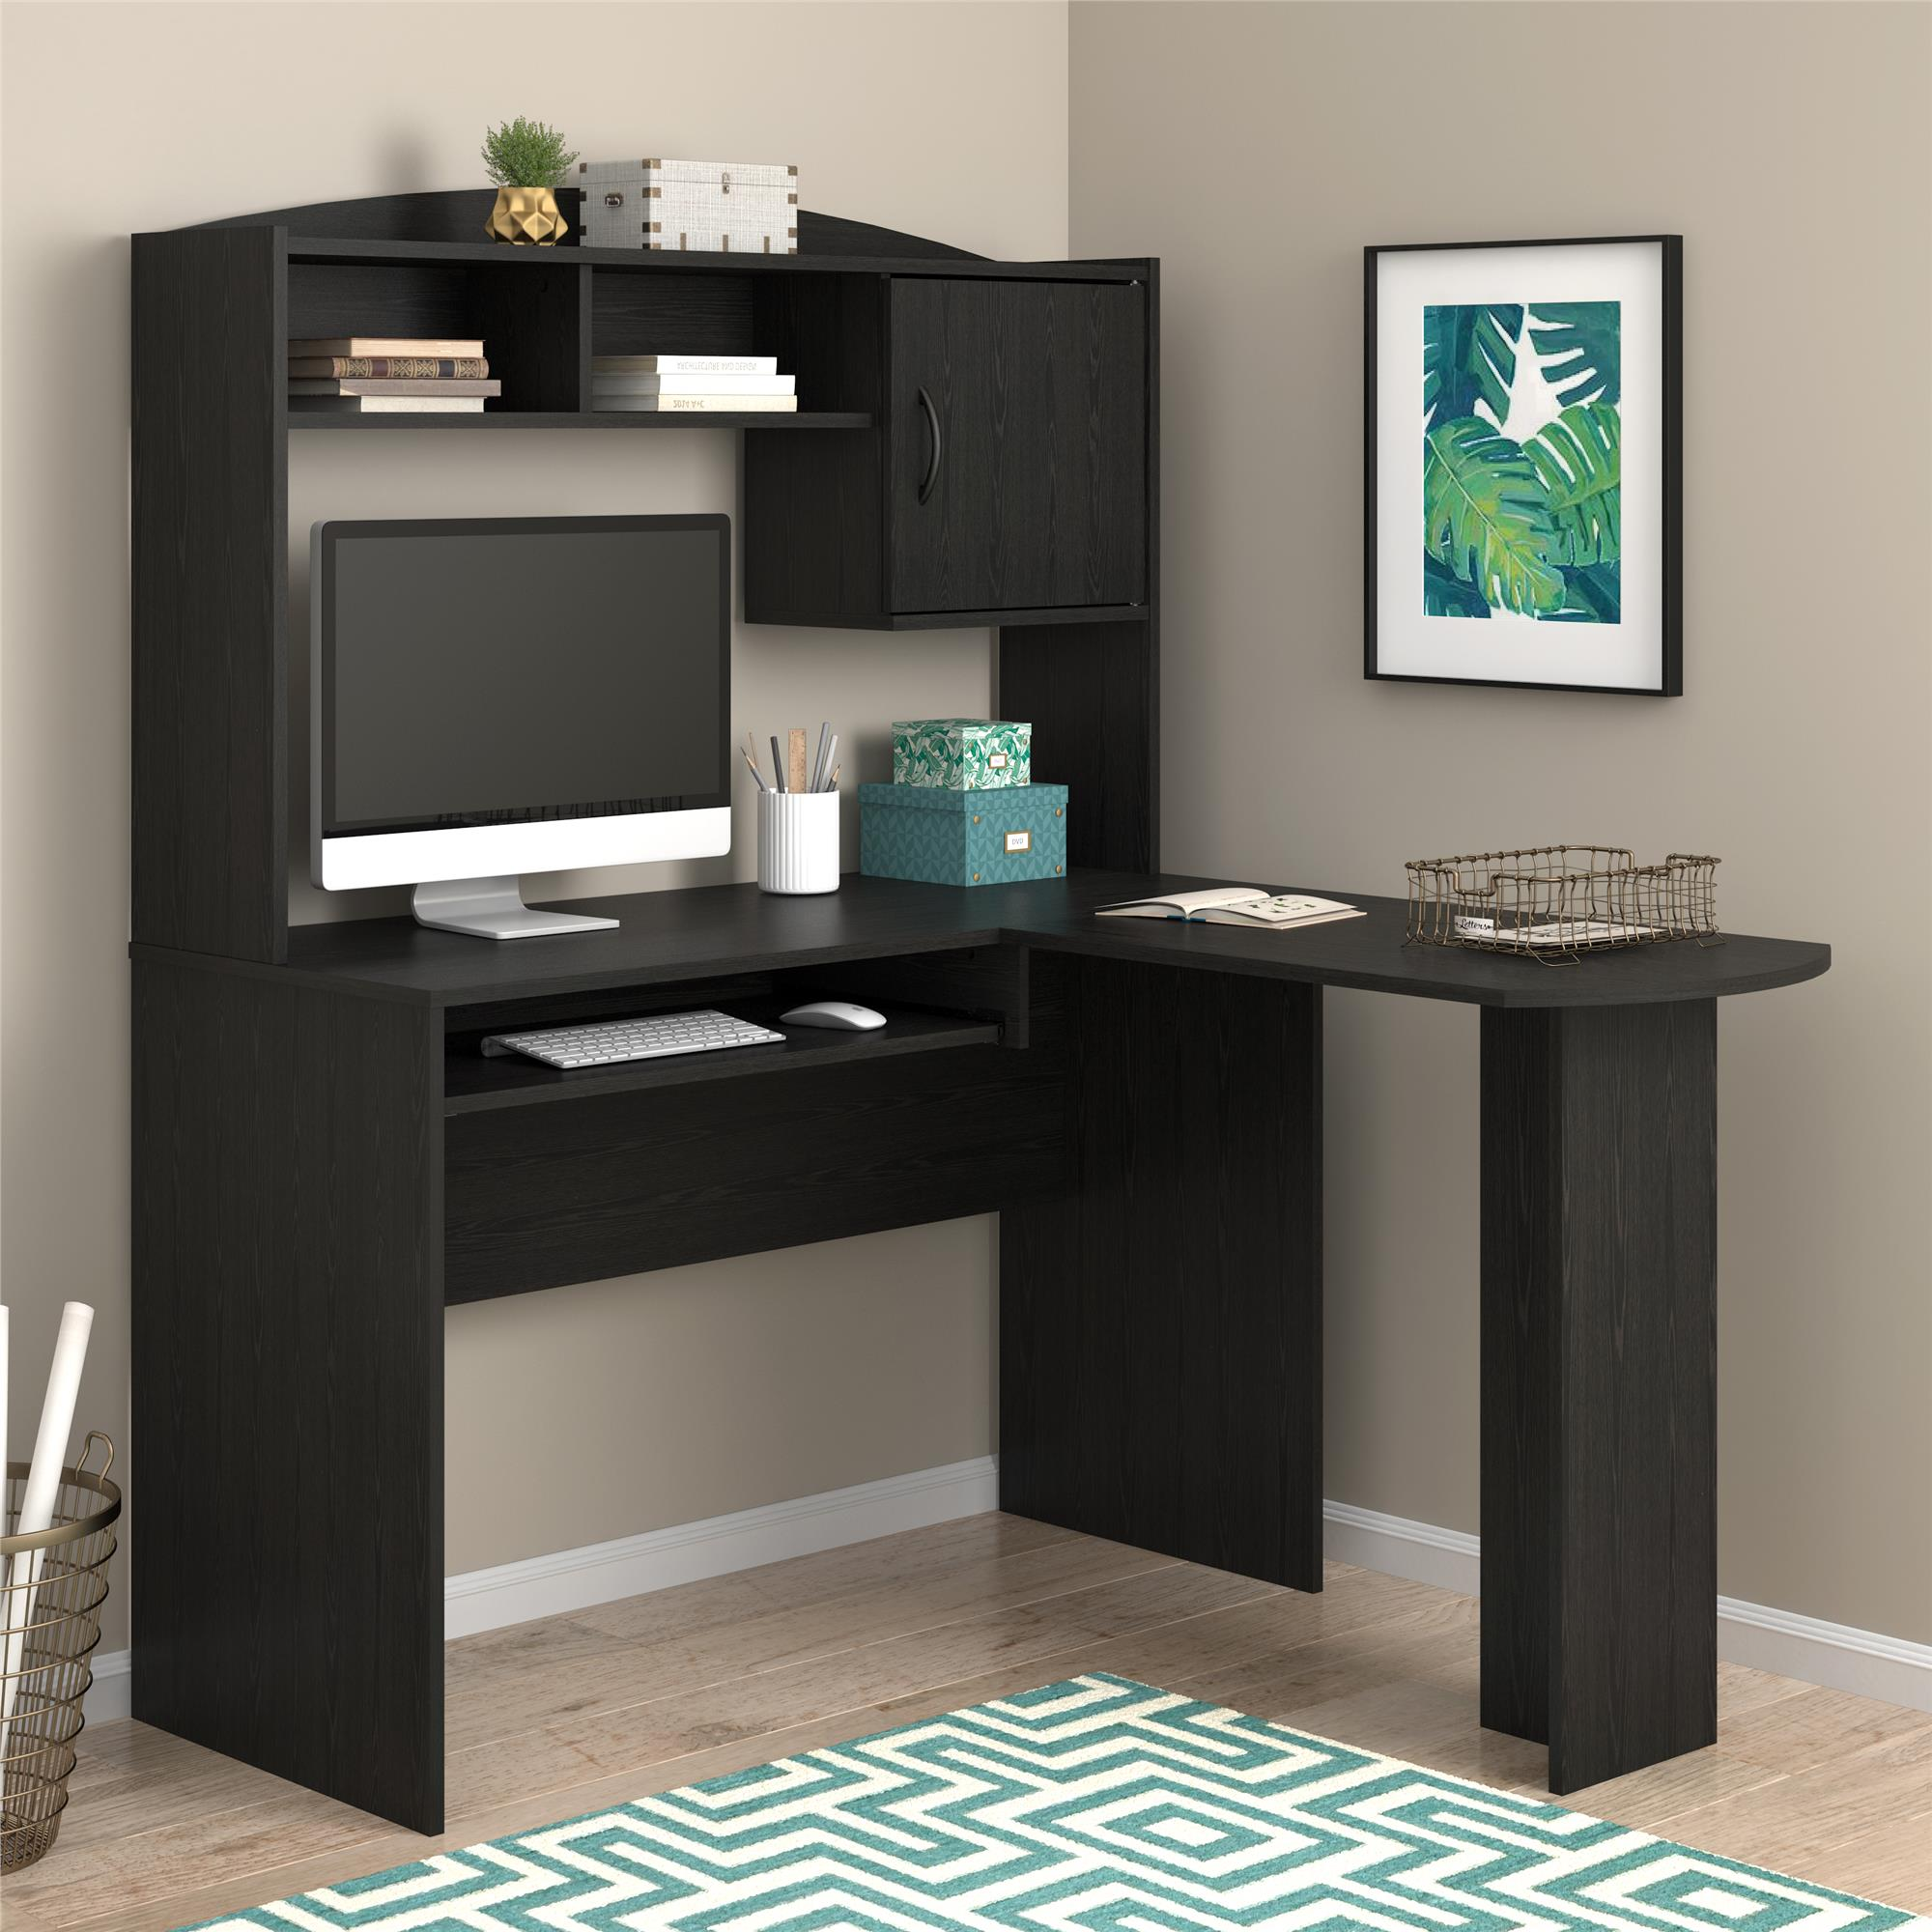 Mainstays LShaped Desk with Hutch Multiple Colors